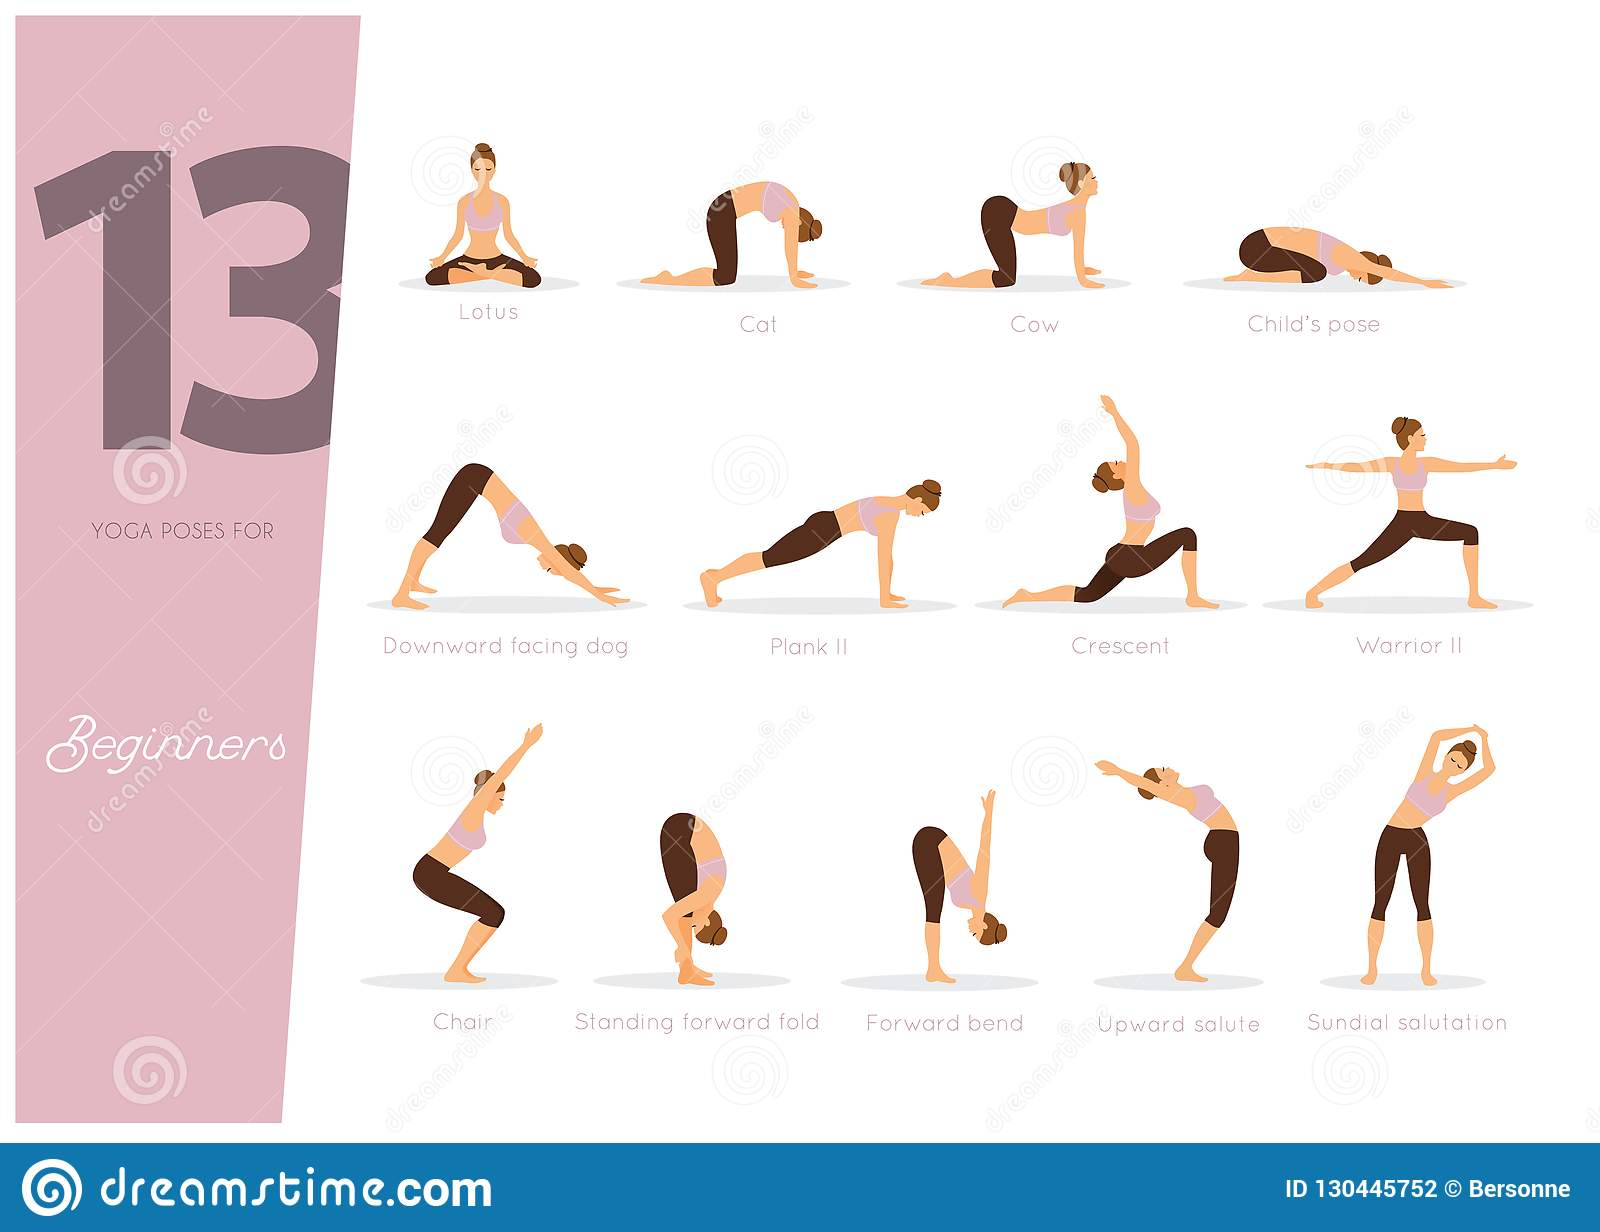 40 Yoga Poses For Beginners Stock Vector - Illustration of figure